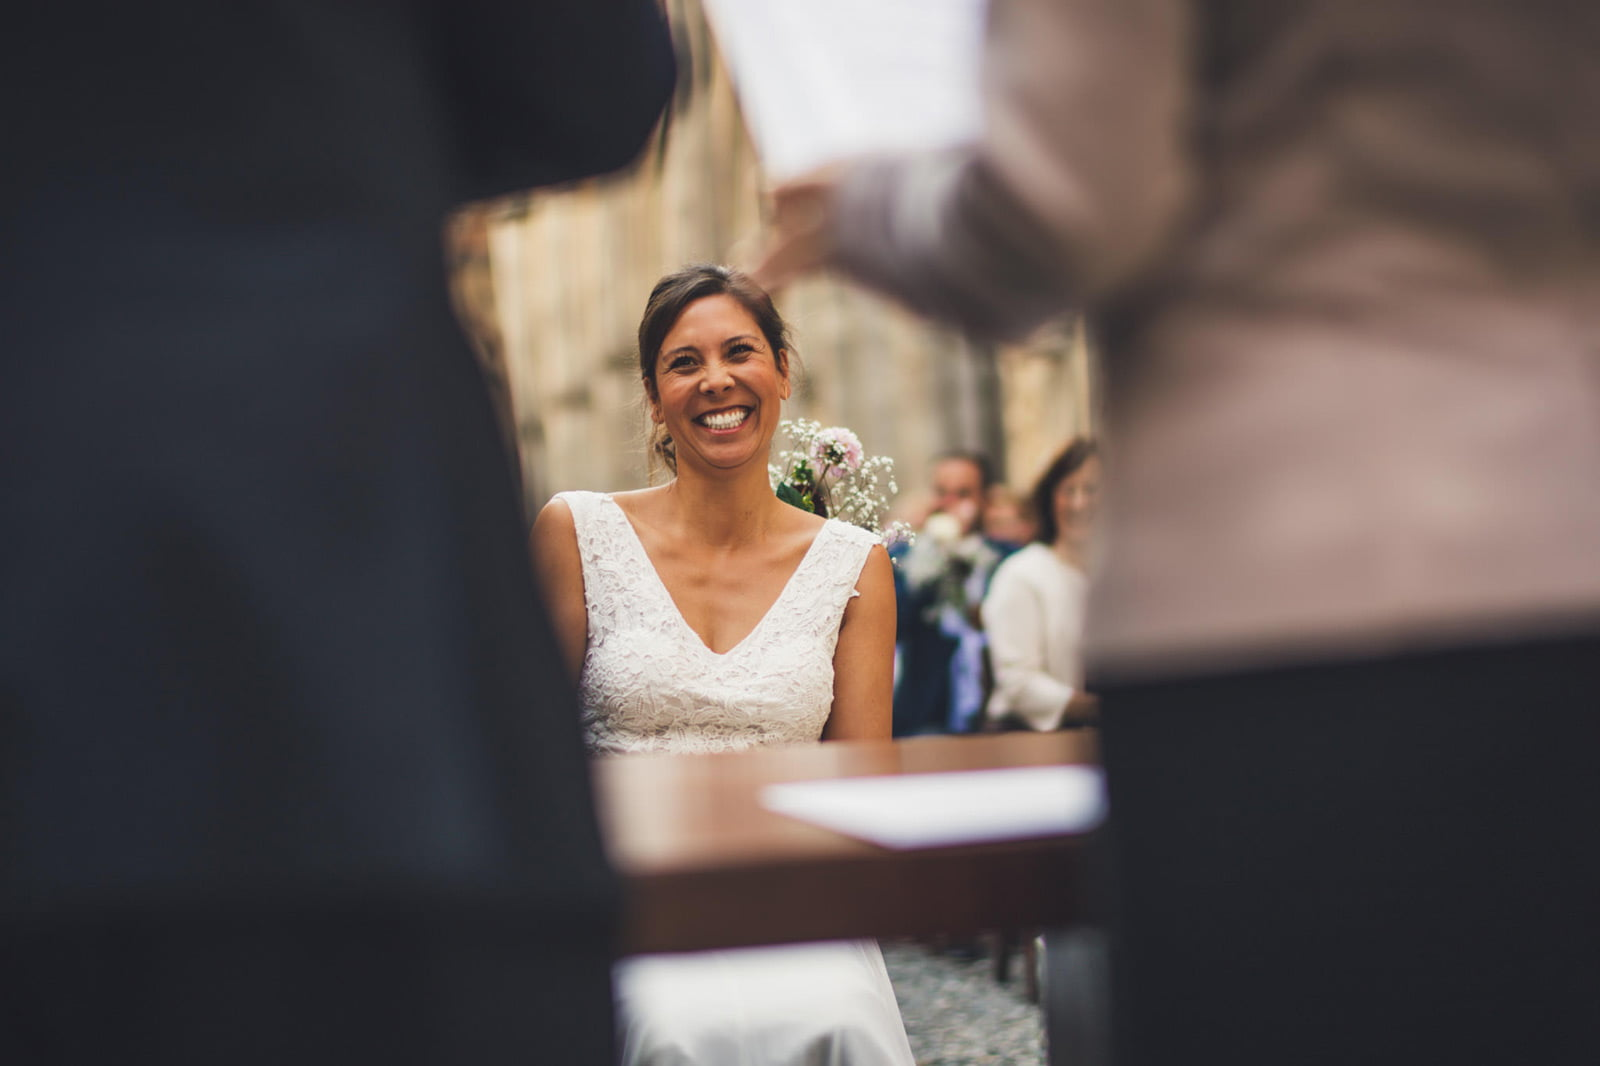 032-wedding-tuscany-san-galgano-siena-photographer